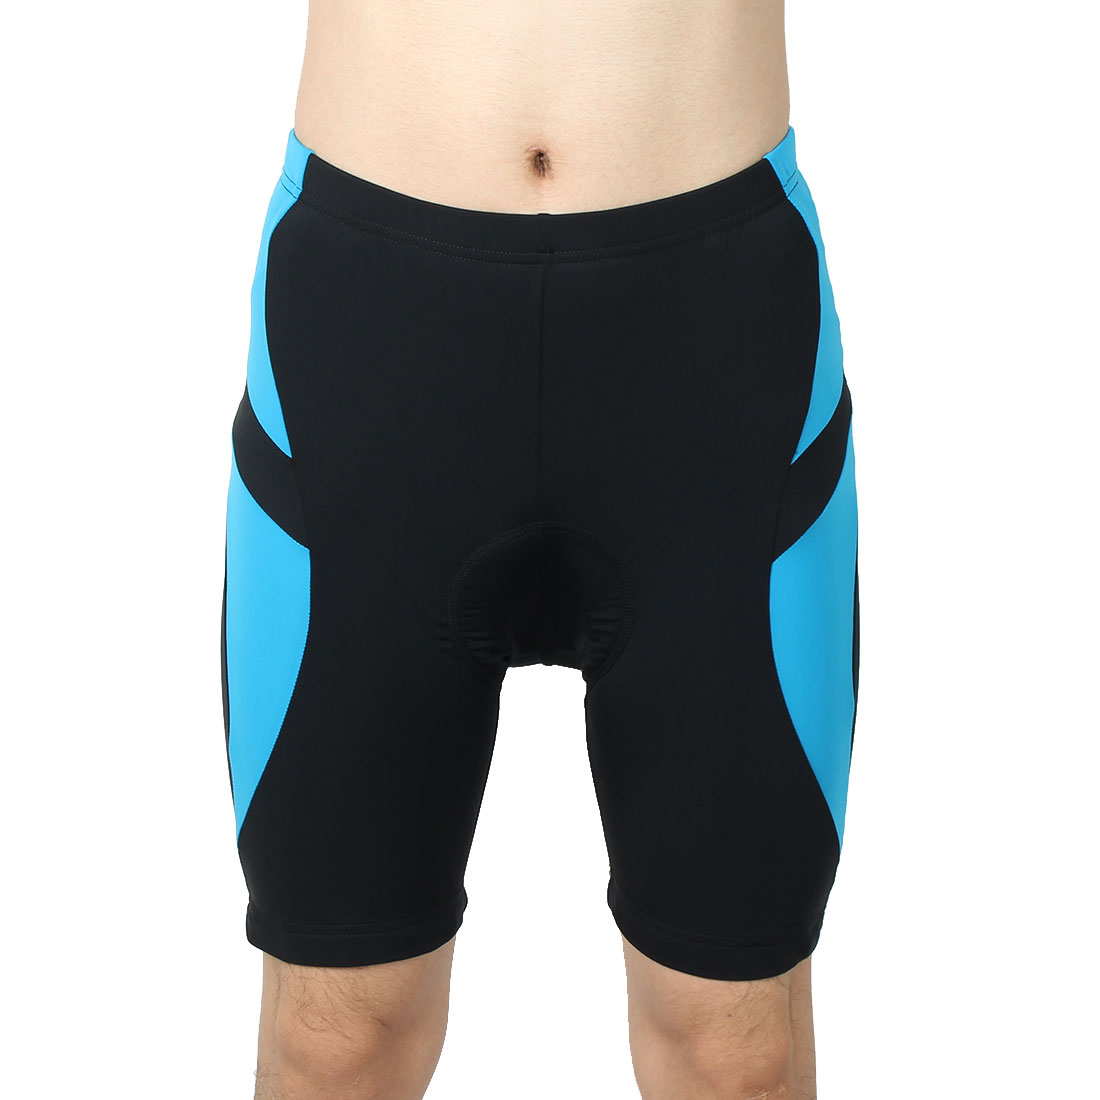 REALTOO Authorized Bicycle Underwear Cycling Shorts Pants Black Blue L (W 36)